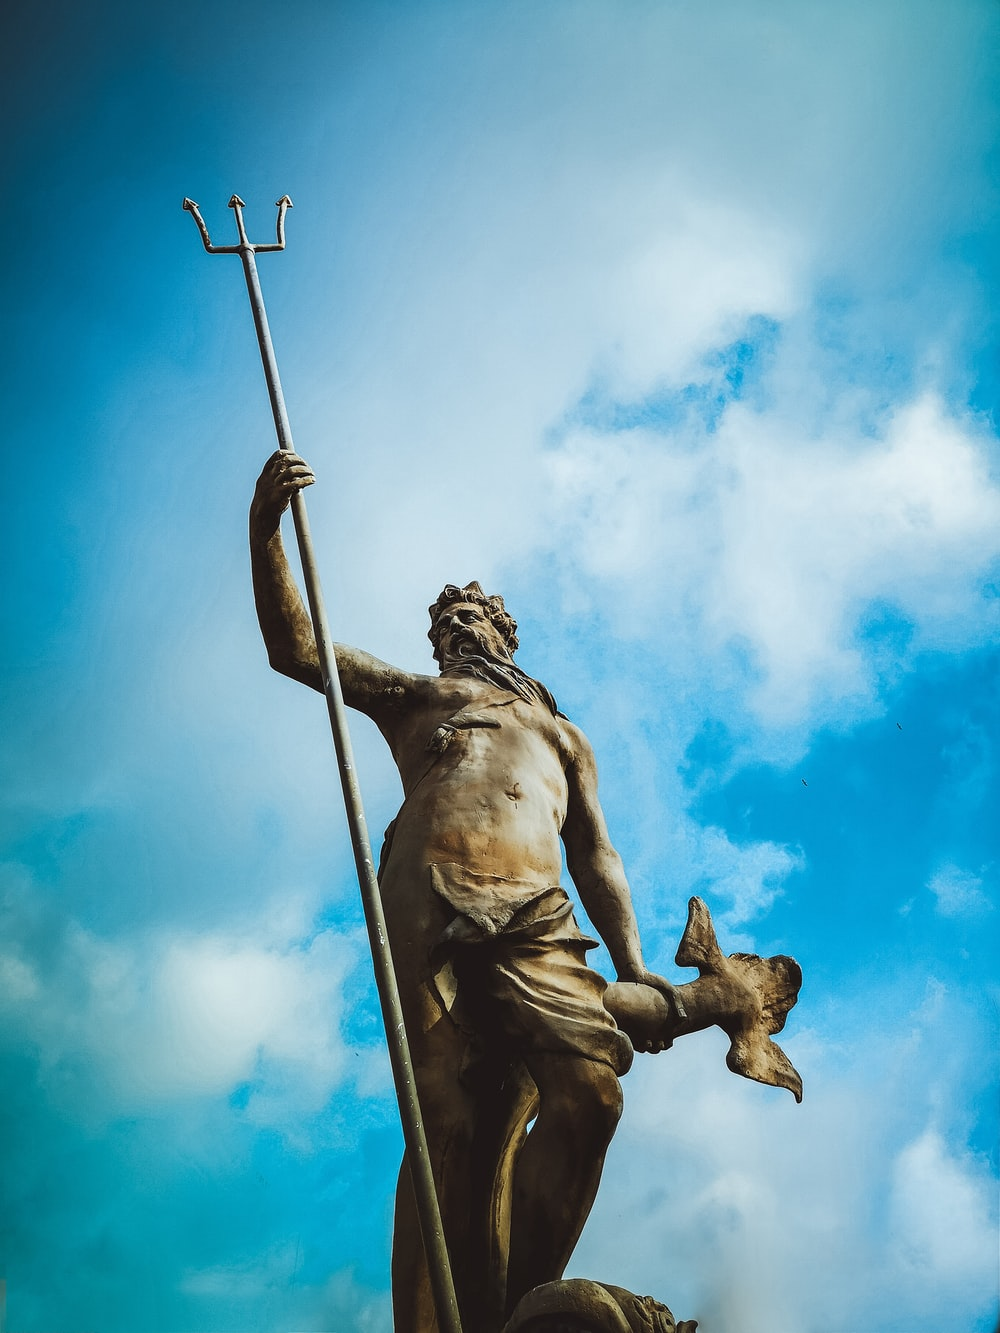 man holding trident statue under white clouds at daytime